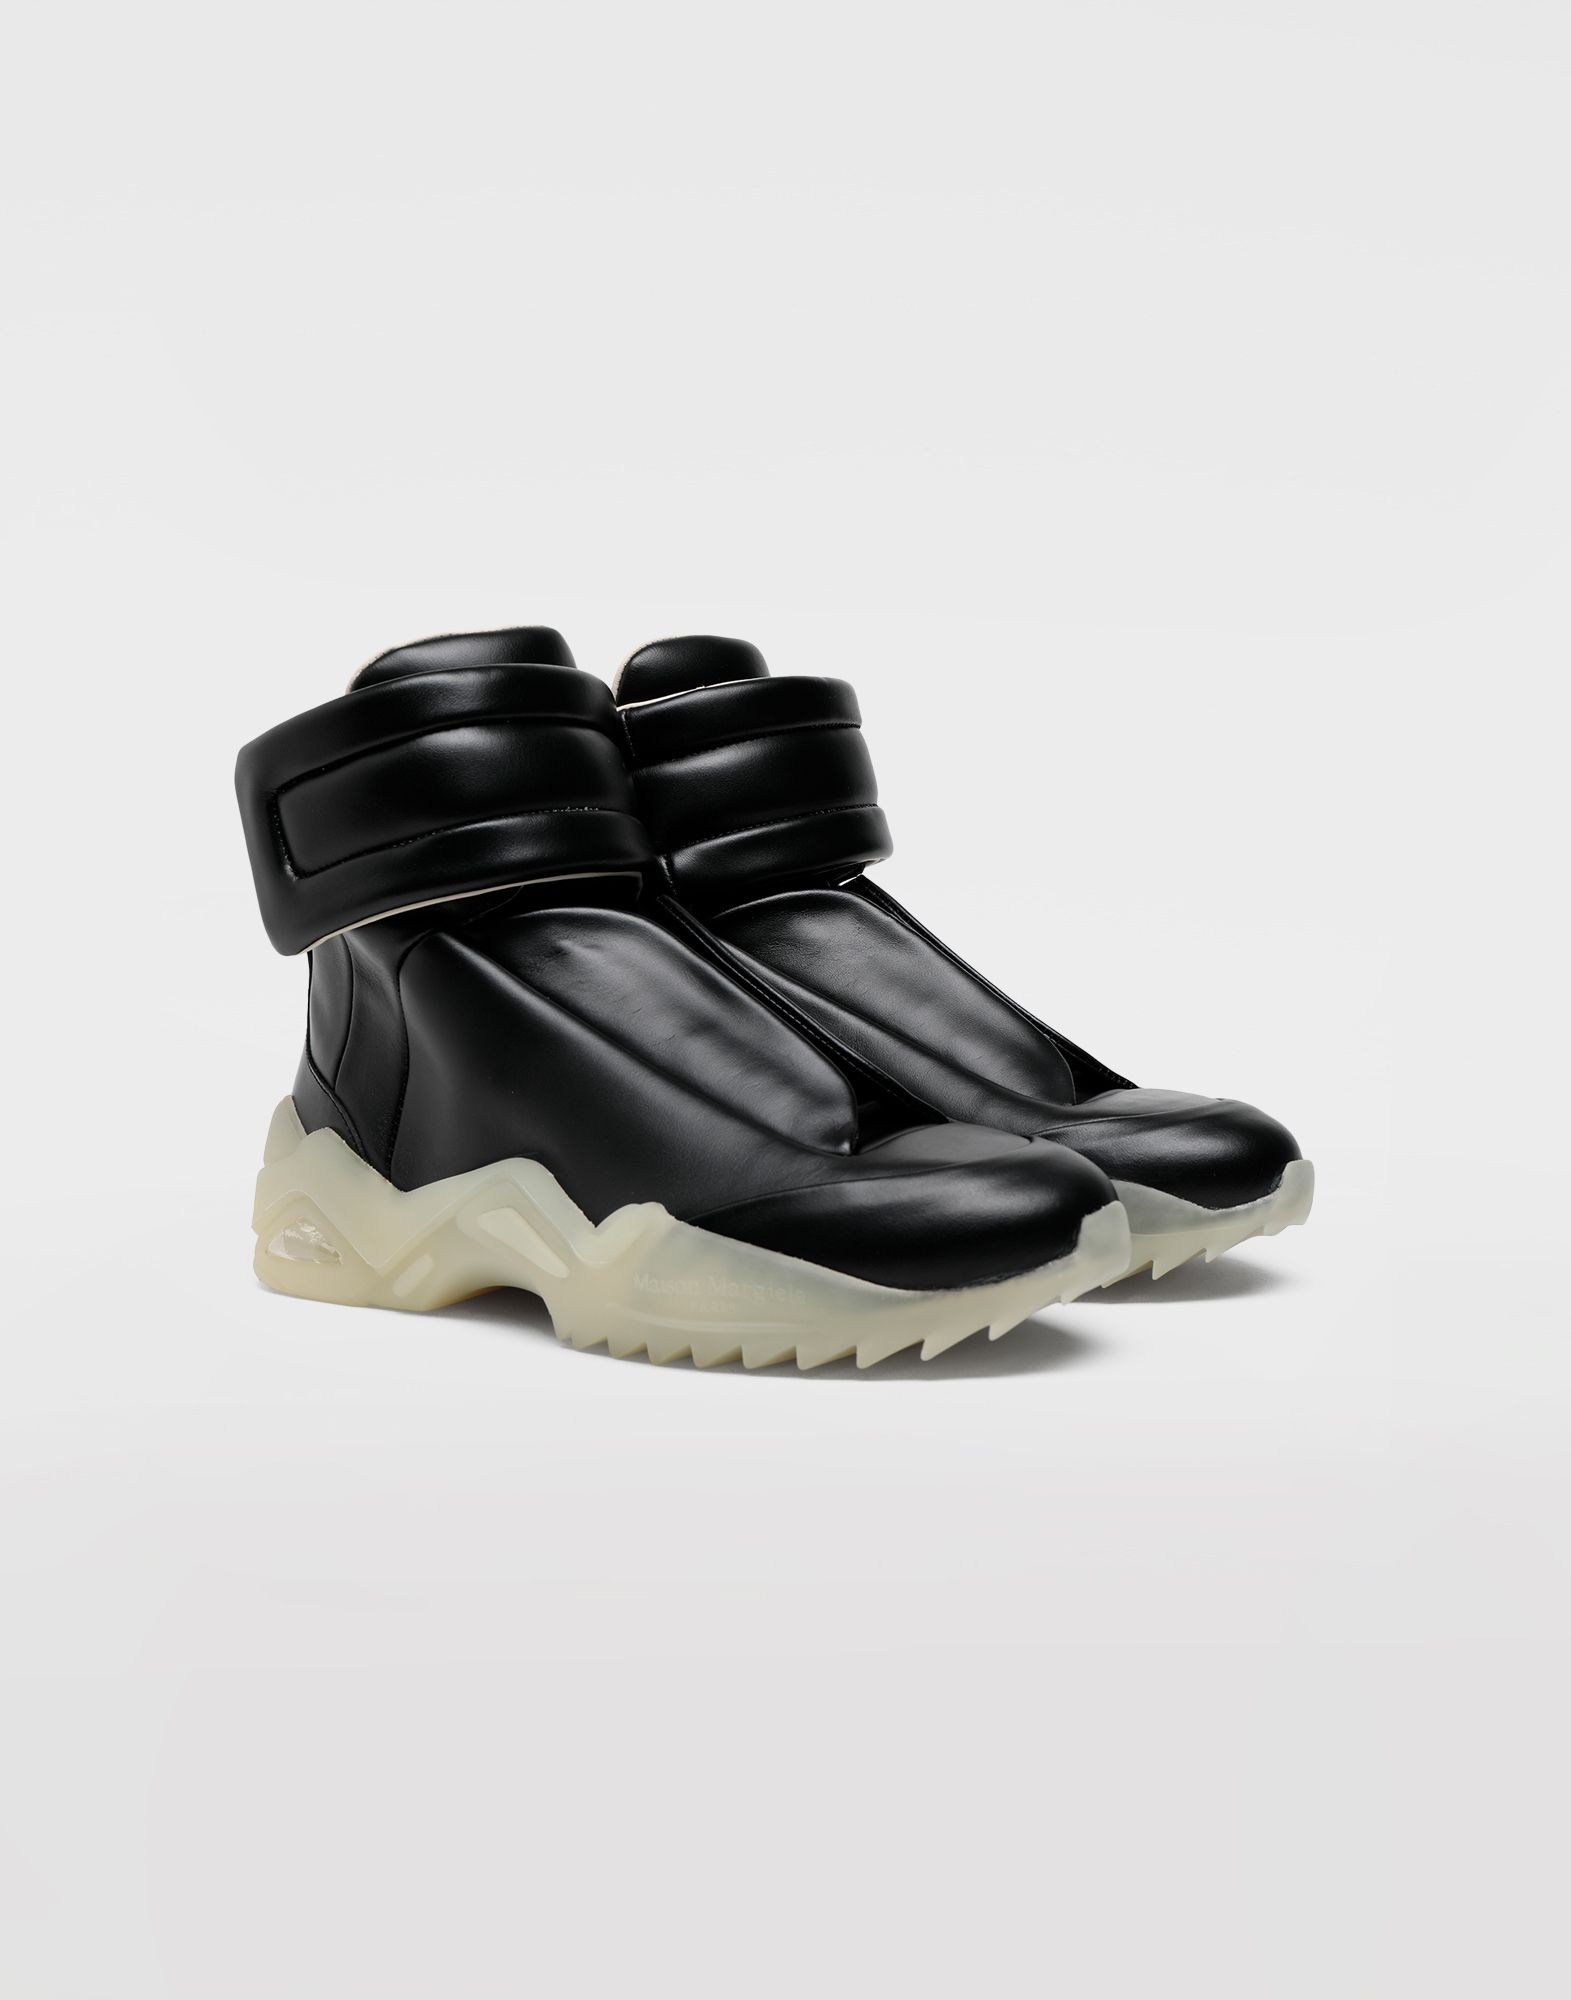 MAISON MARGIELA Future high-top leather sneakers Sneakers Man d